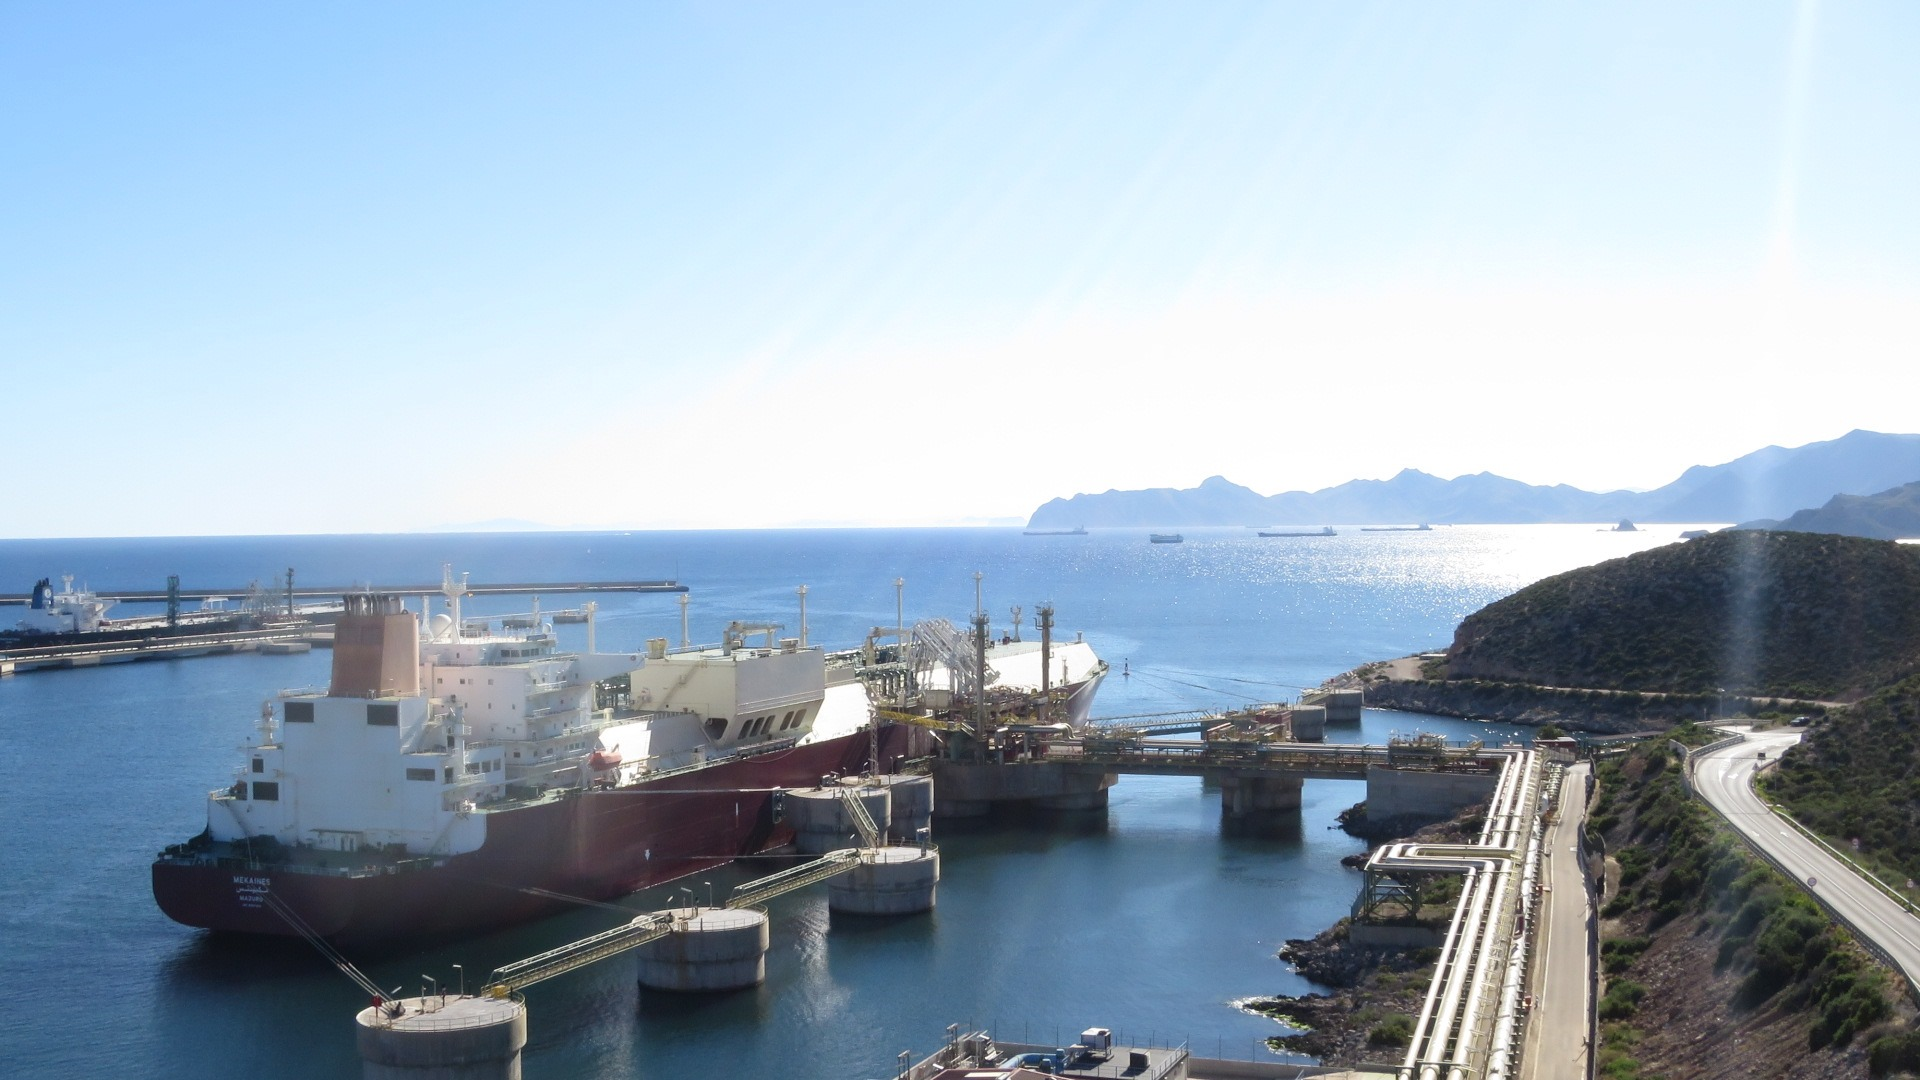 Spain's October LNG imports dip